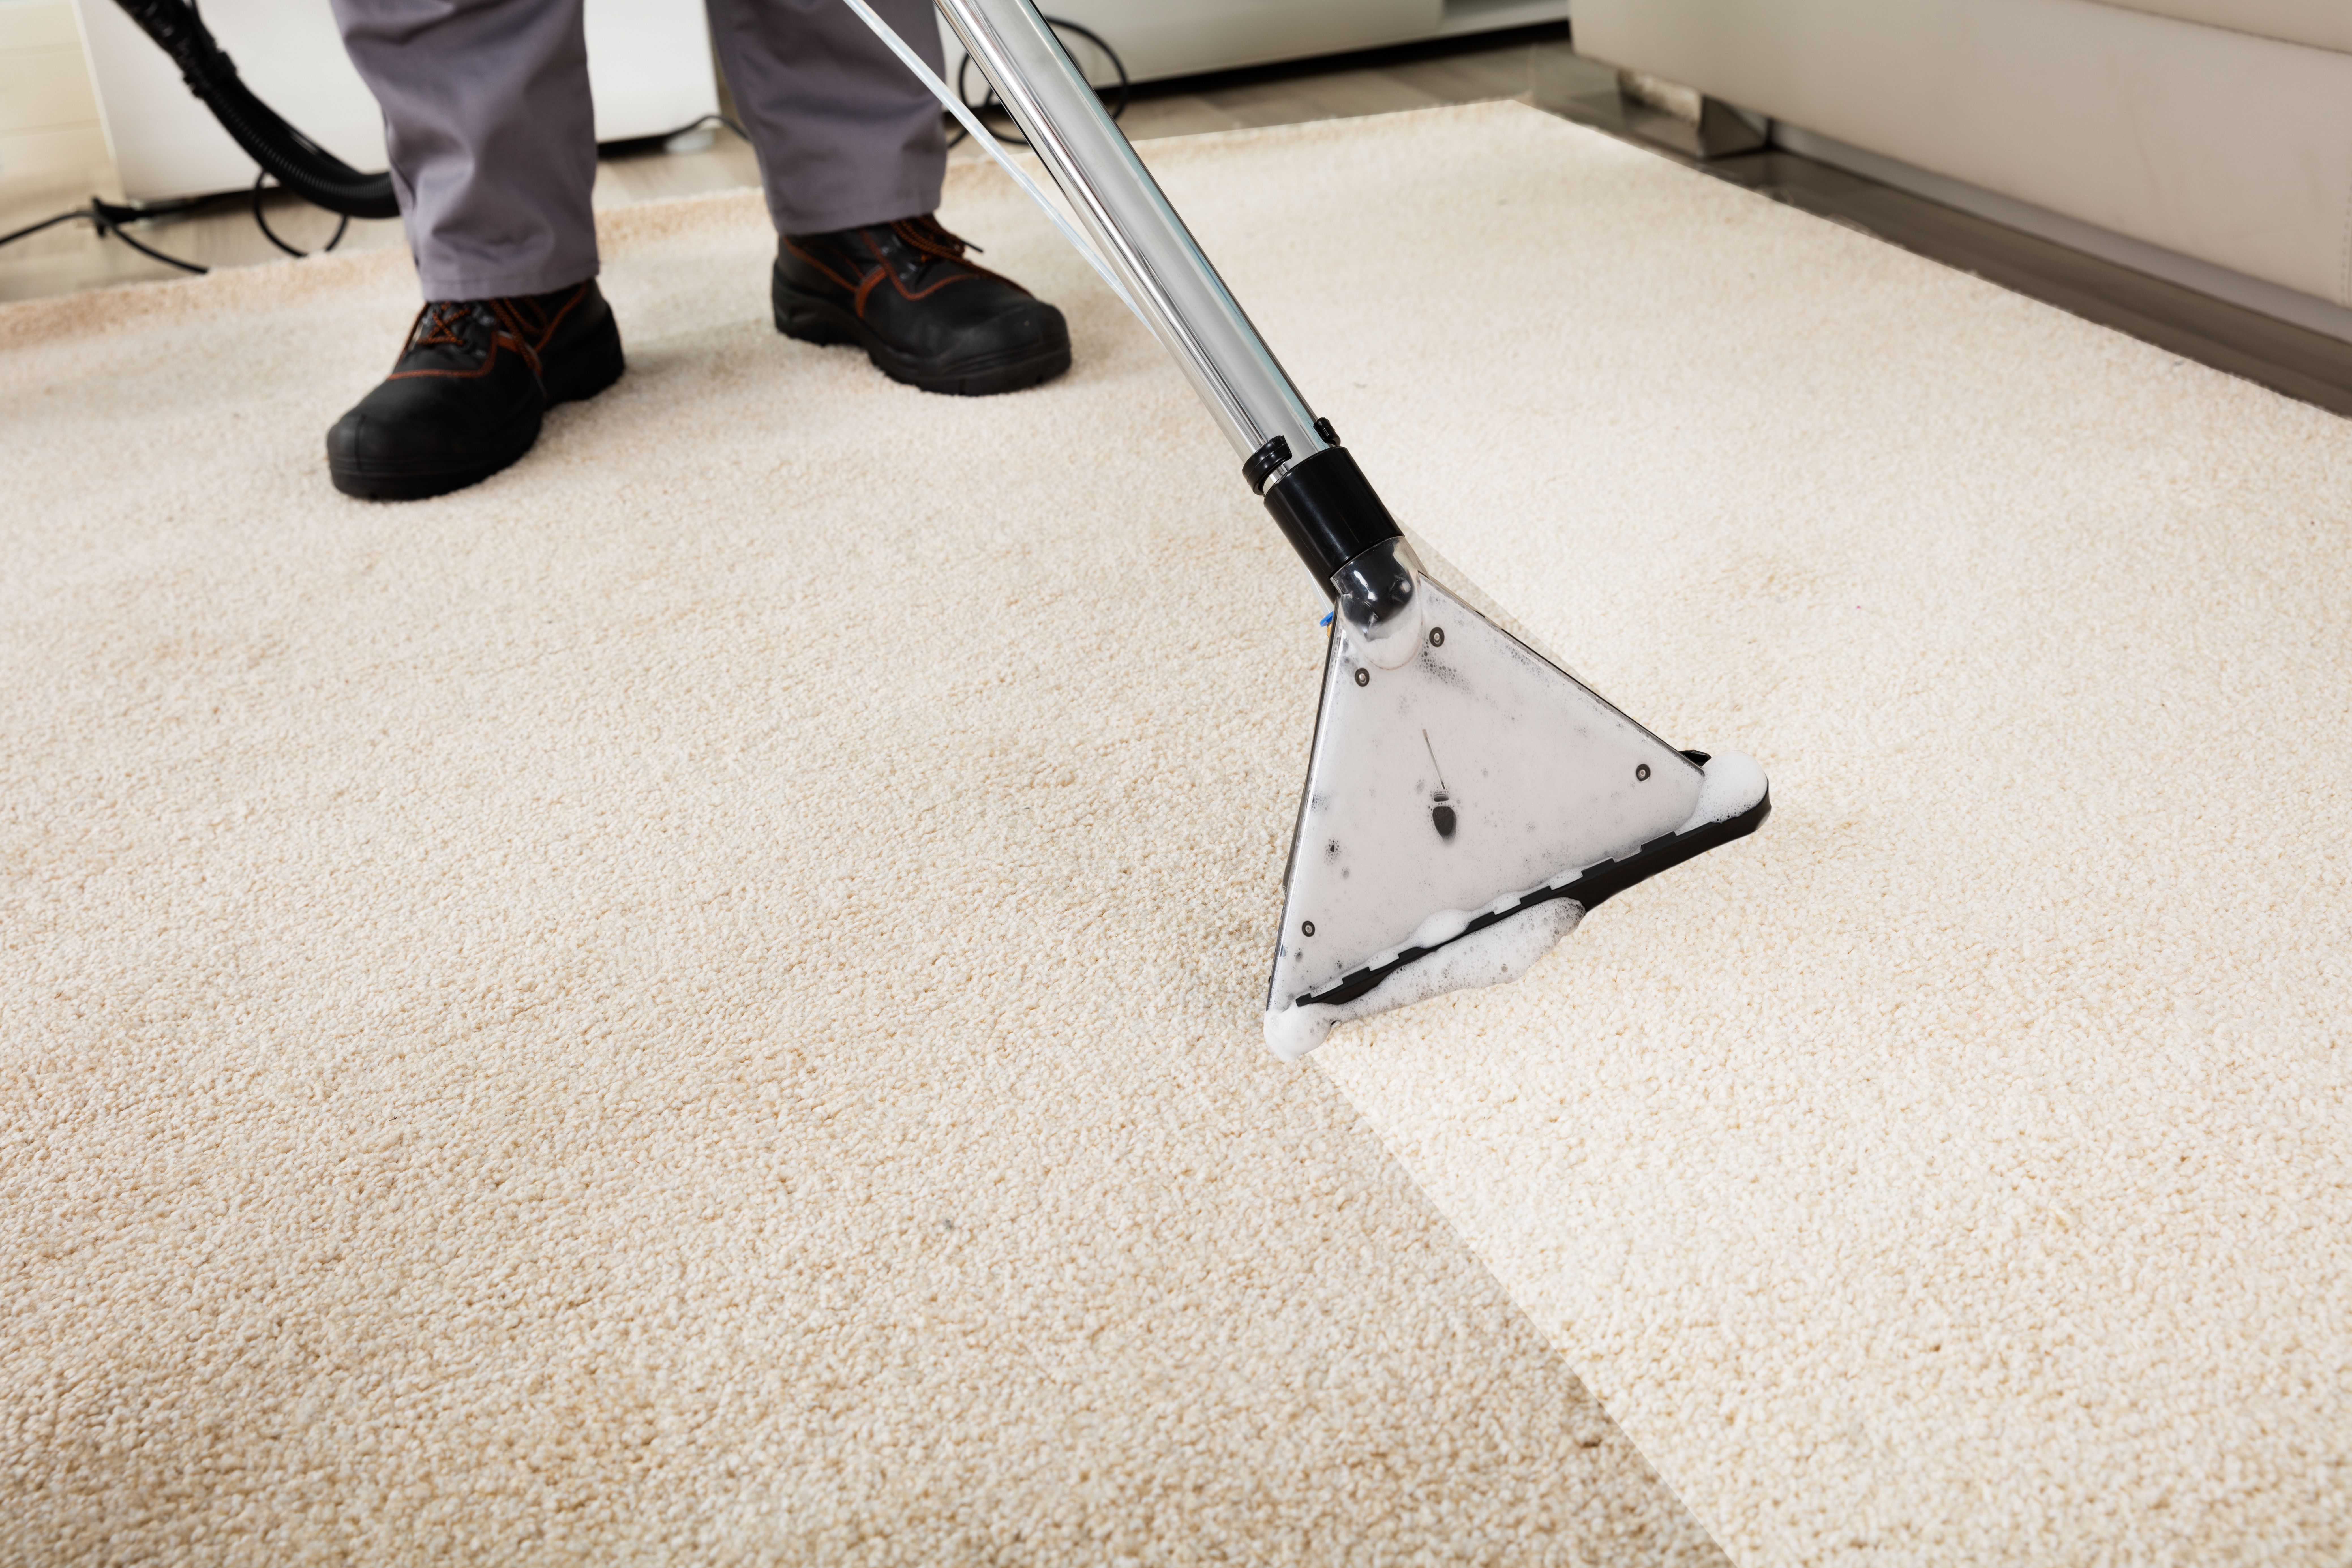 tristate carpet cleaning auburn angola indiana